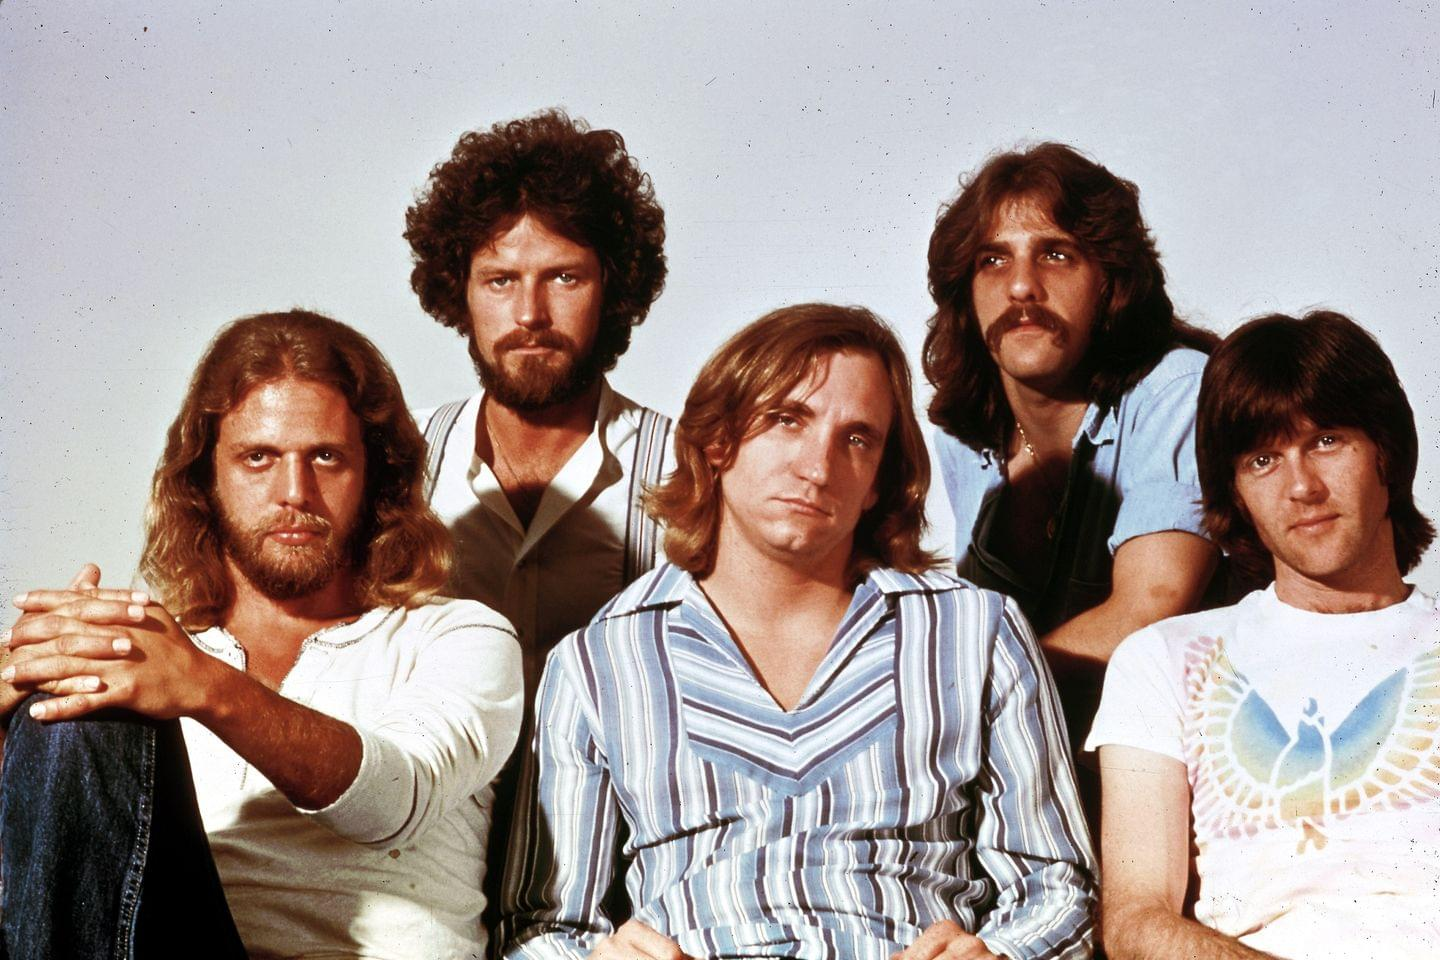 Eagles' 'Greatest Hits' Overtakes Michael Jackson's 'Thriller' As Best-Selling Album